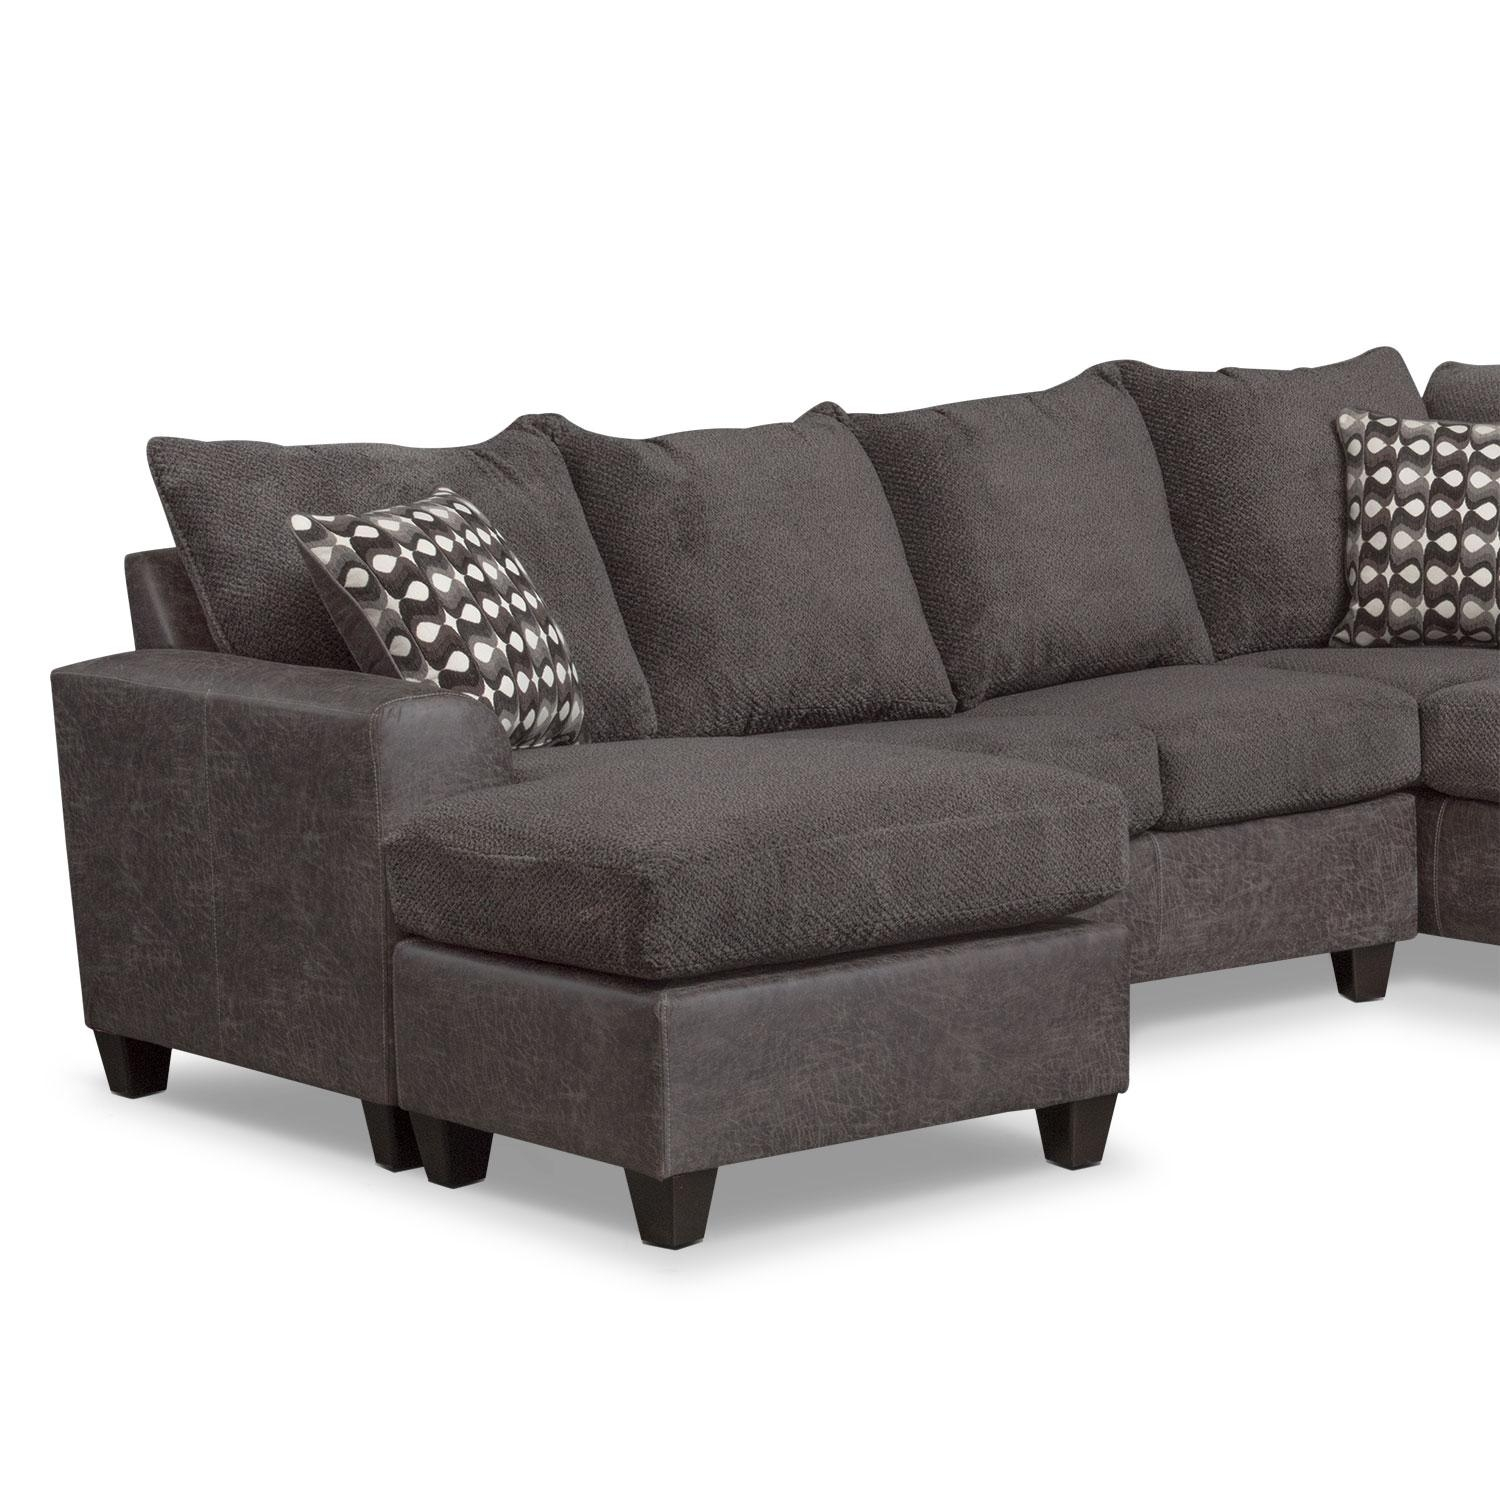 Brando 3 Piece Sectional With Modular Chaise – Smoke | American With Regard To Serta Sectional (View 20 of 20)